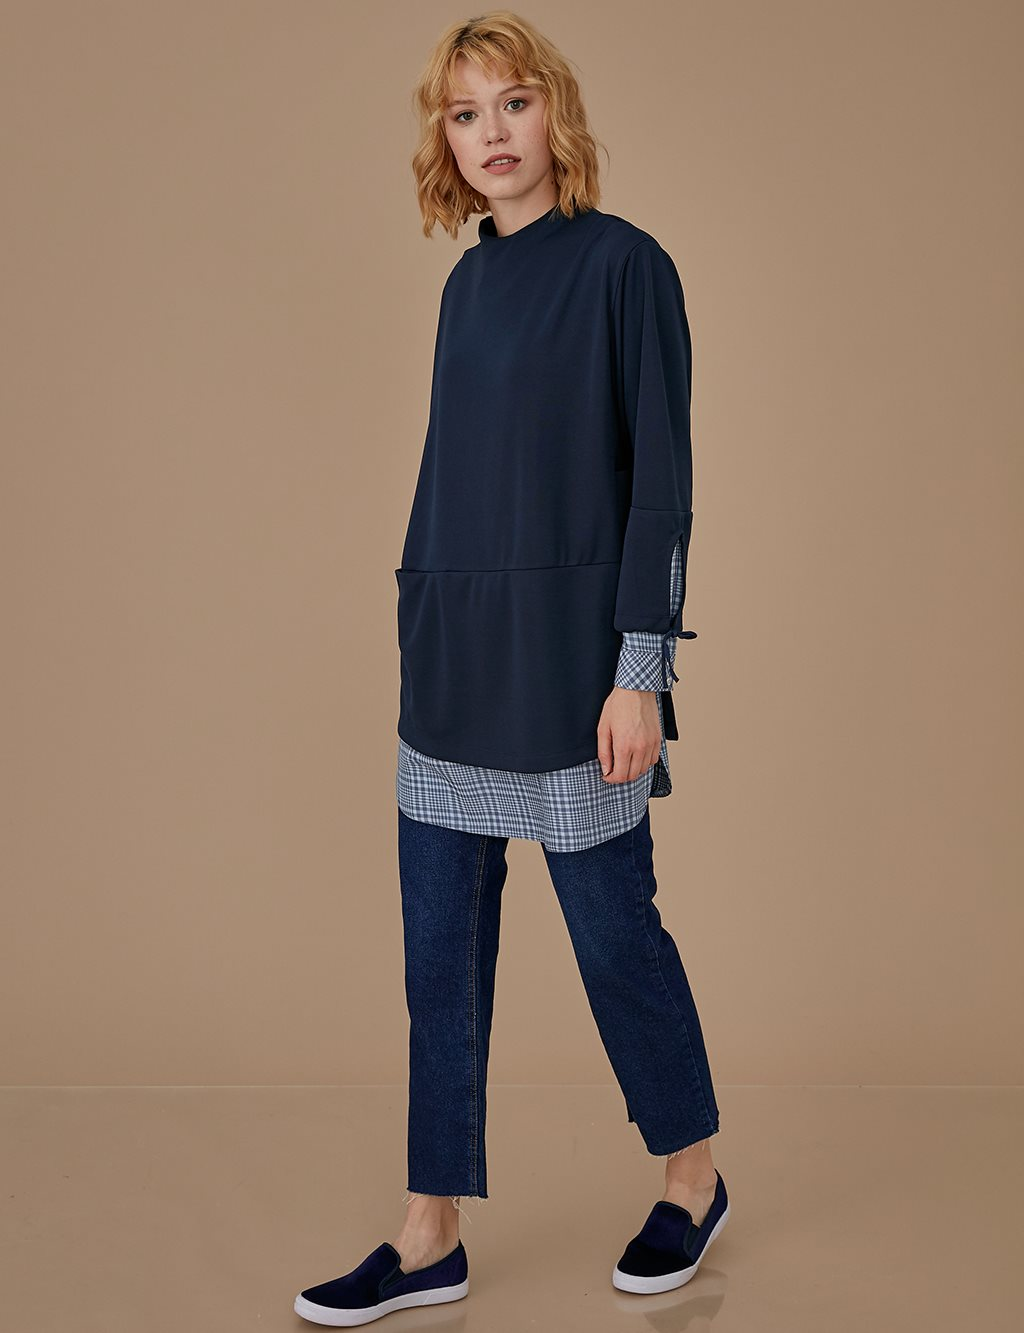 Plaid Tunic A9 21128 Navy